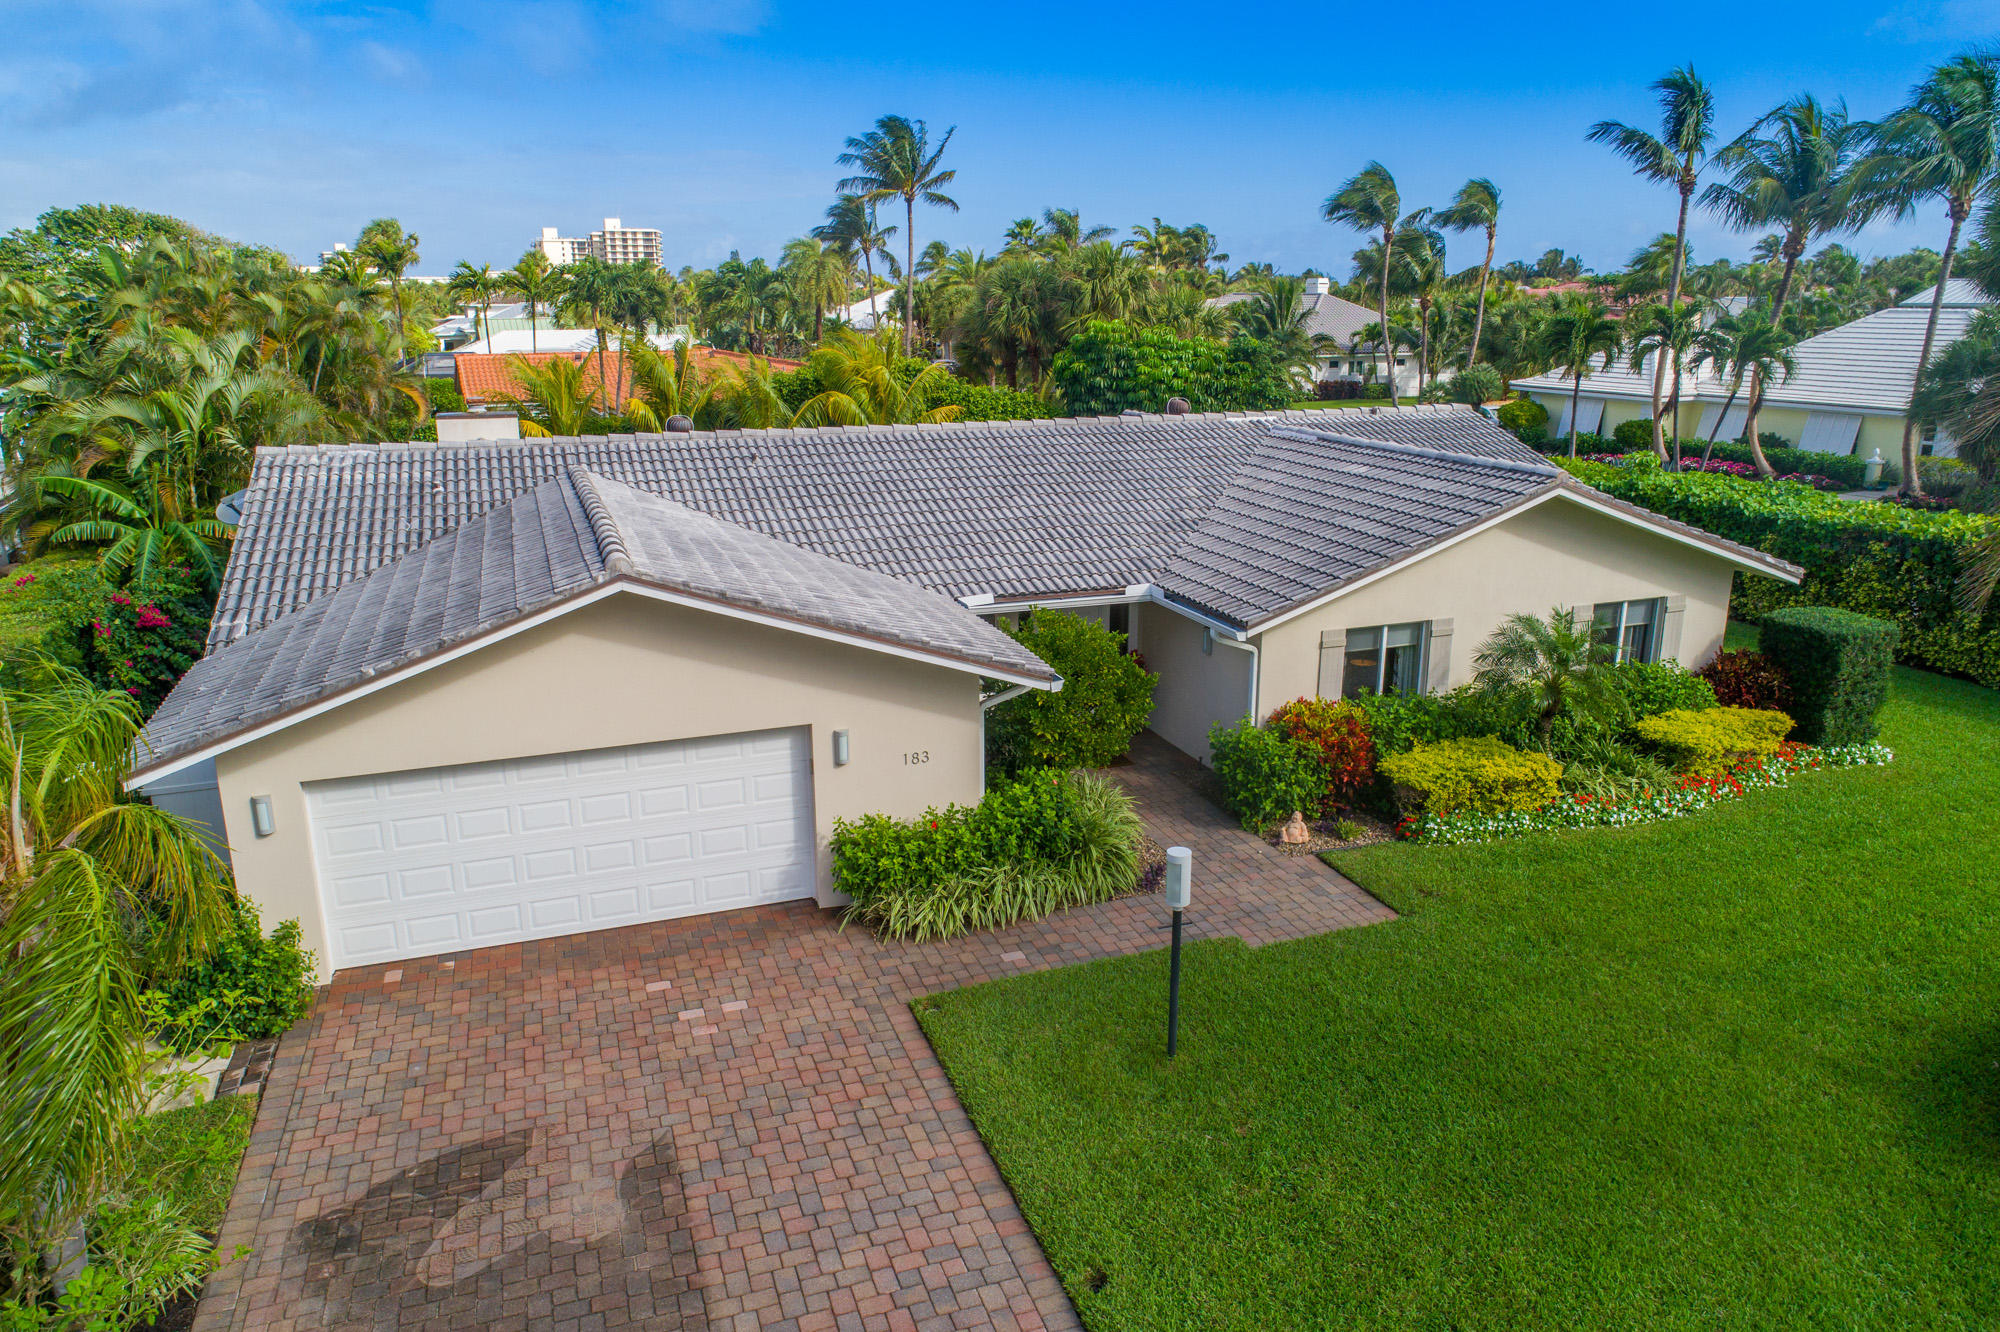 New Home for sale at 183 Beacon Lane in Jupiter Inlet Colony